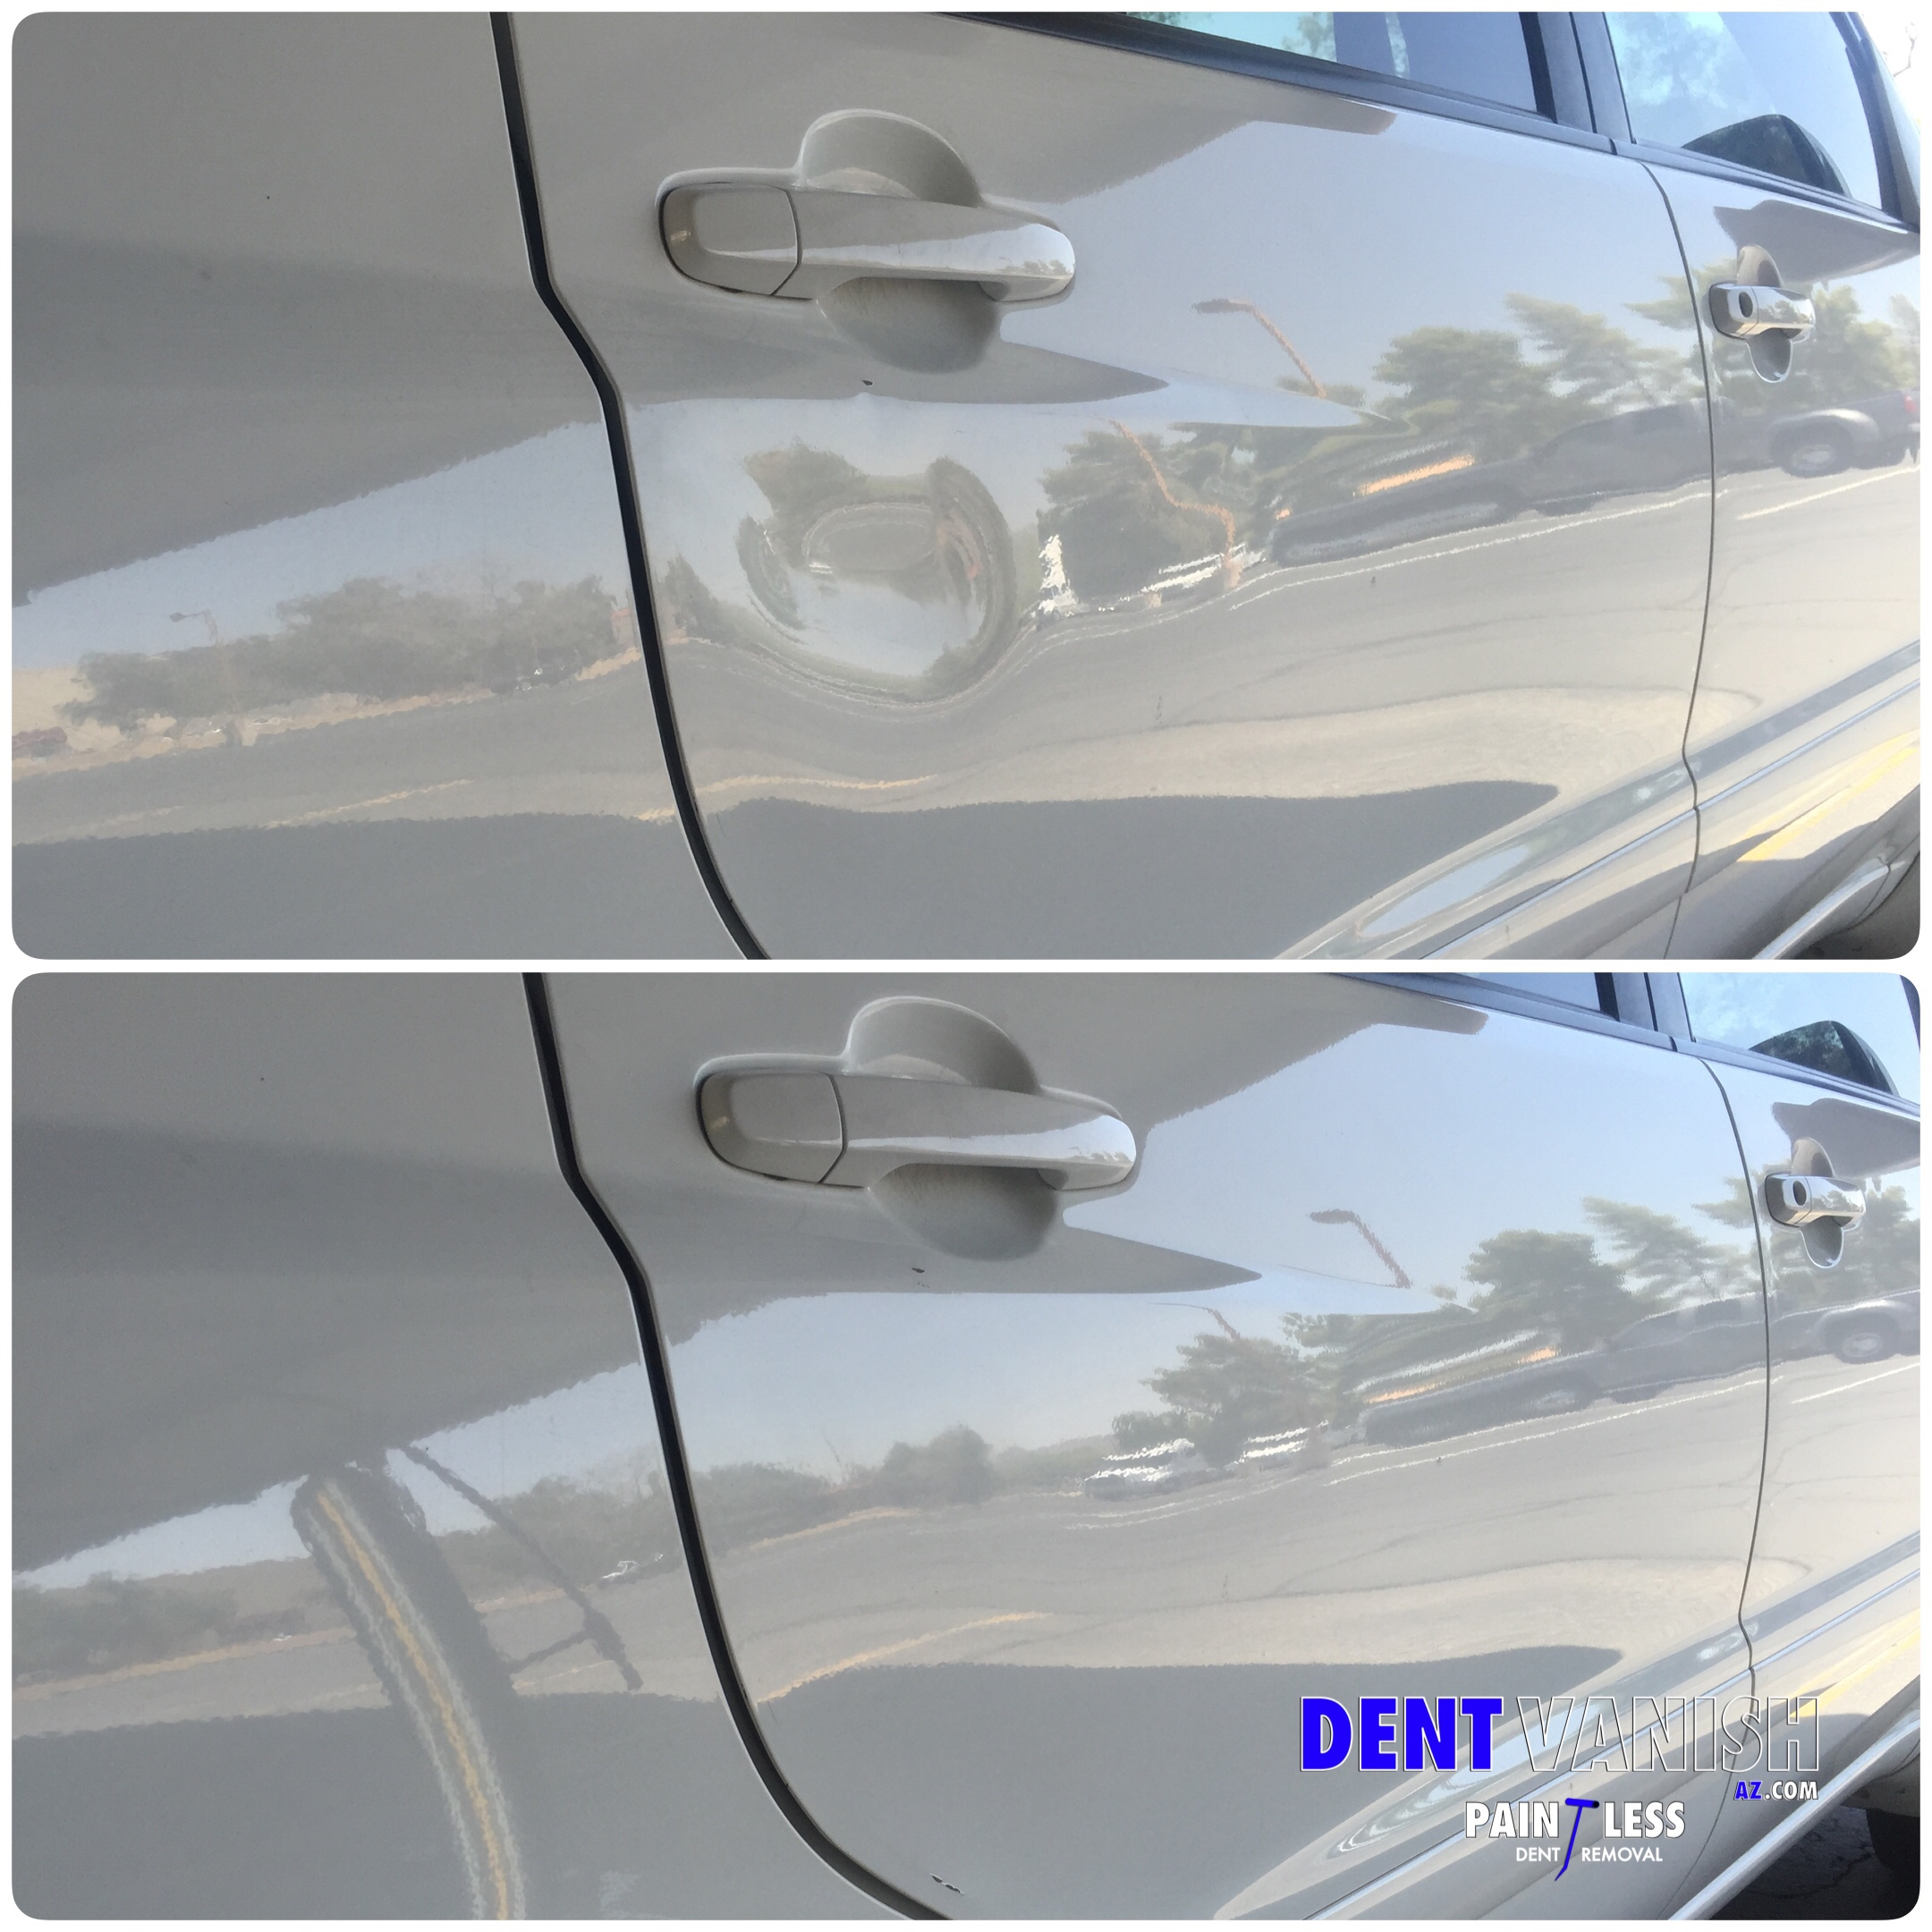 Fixing the dent in your car no longer needs to be a headache. Call Dent Vanish and we would love to help.